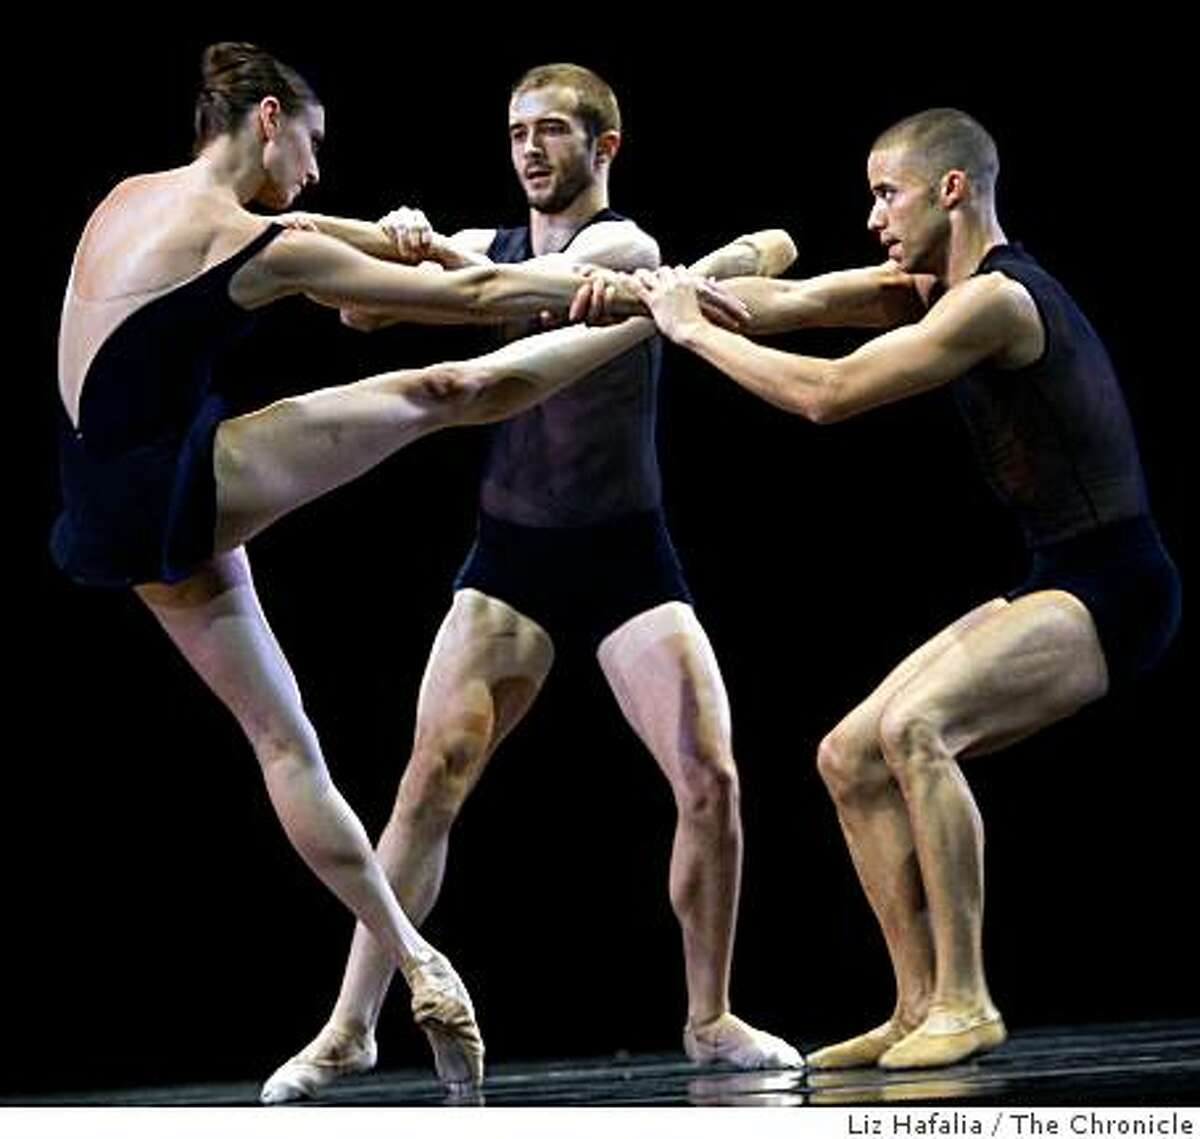 """Ricardo Zayas (R), Meredith Webster (L), and David Harey (middle) performing """"String quartet"""" in the Lines Ballet in a dress rehearsal of the world premiere in San Francisco, Calif., in Yerba Buena Center on Thursday, October 16, 2008."""